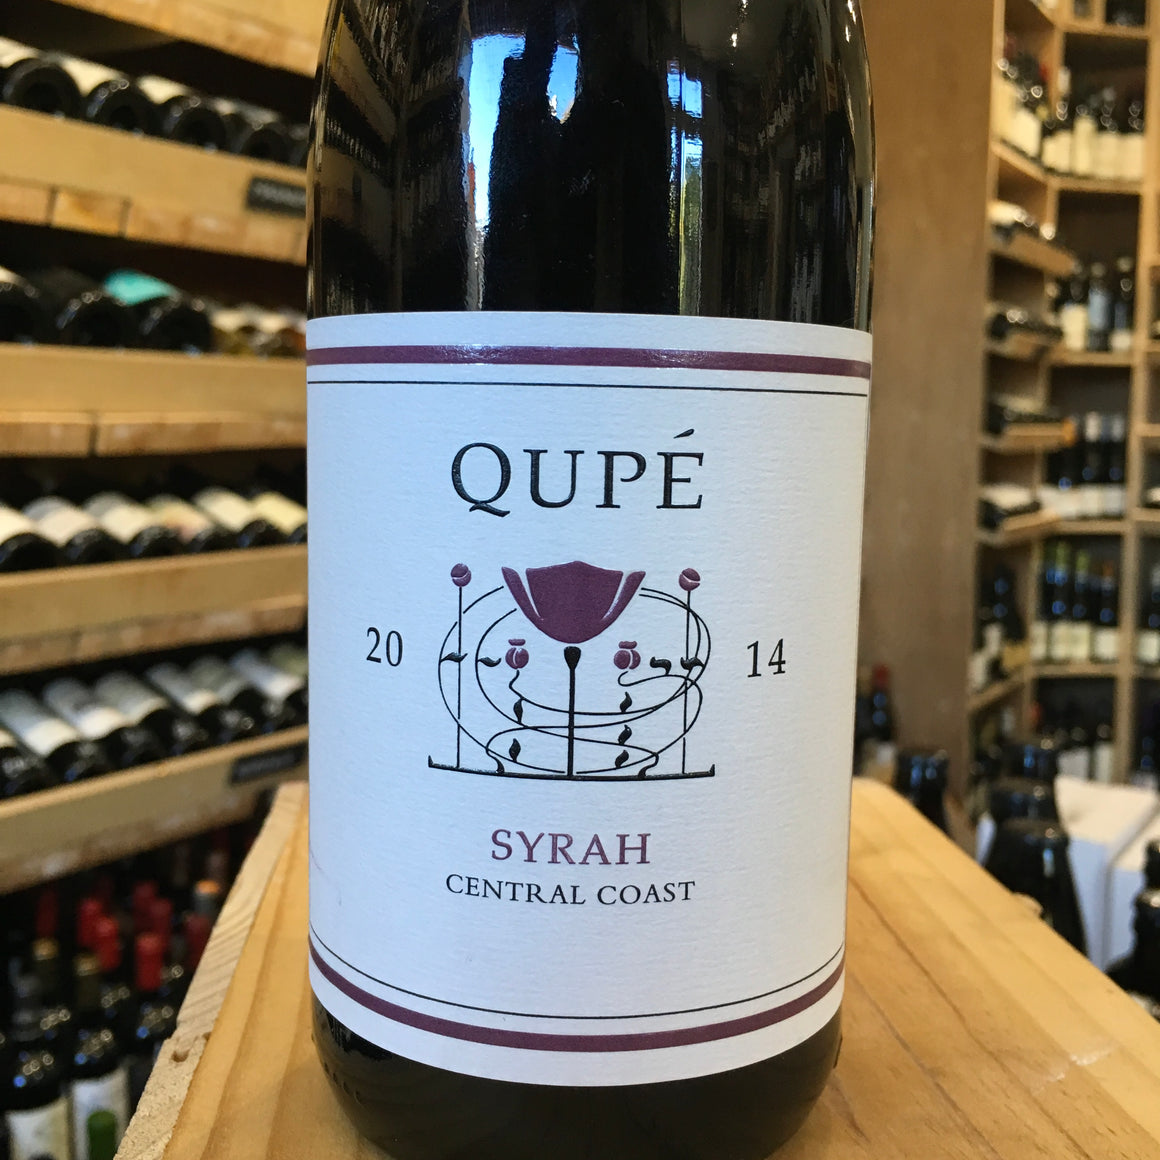 Qupe Central Coast Syrah 2014 - Butlers Wine Cellar Brighton